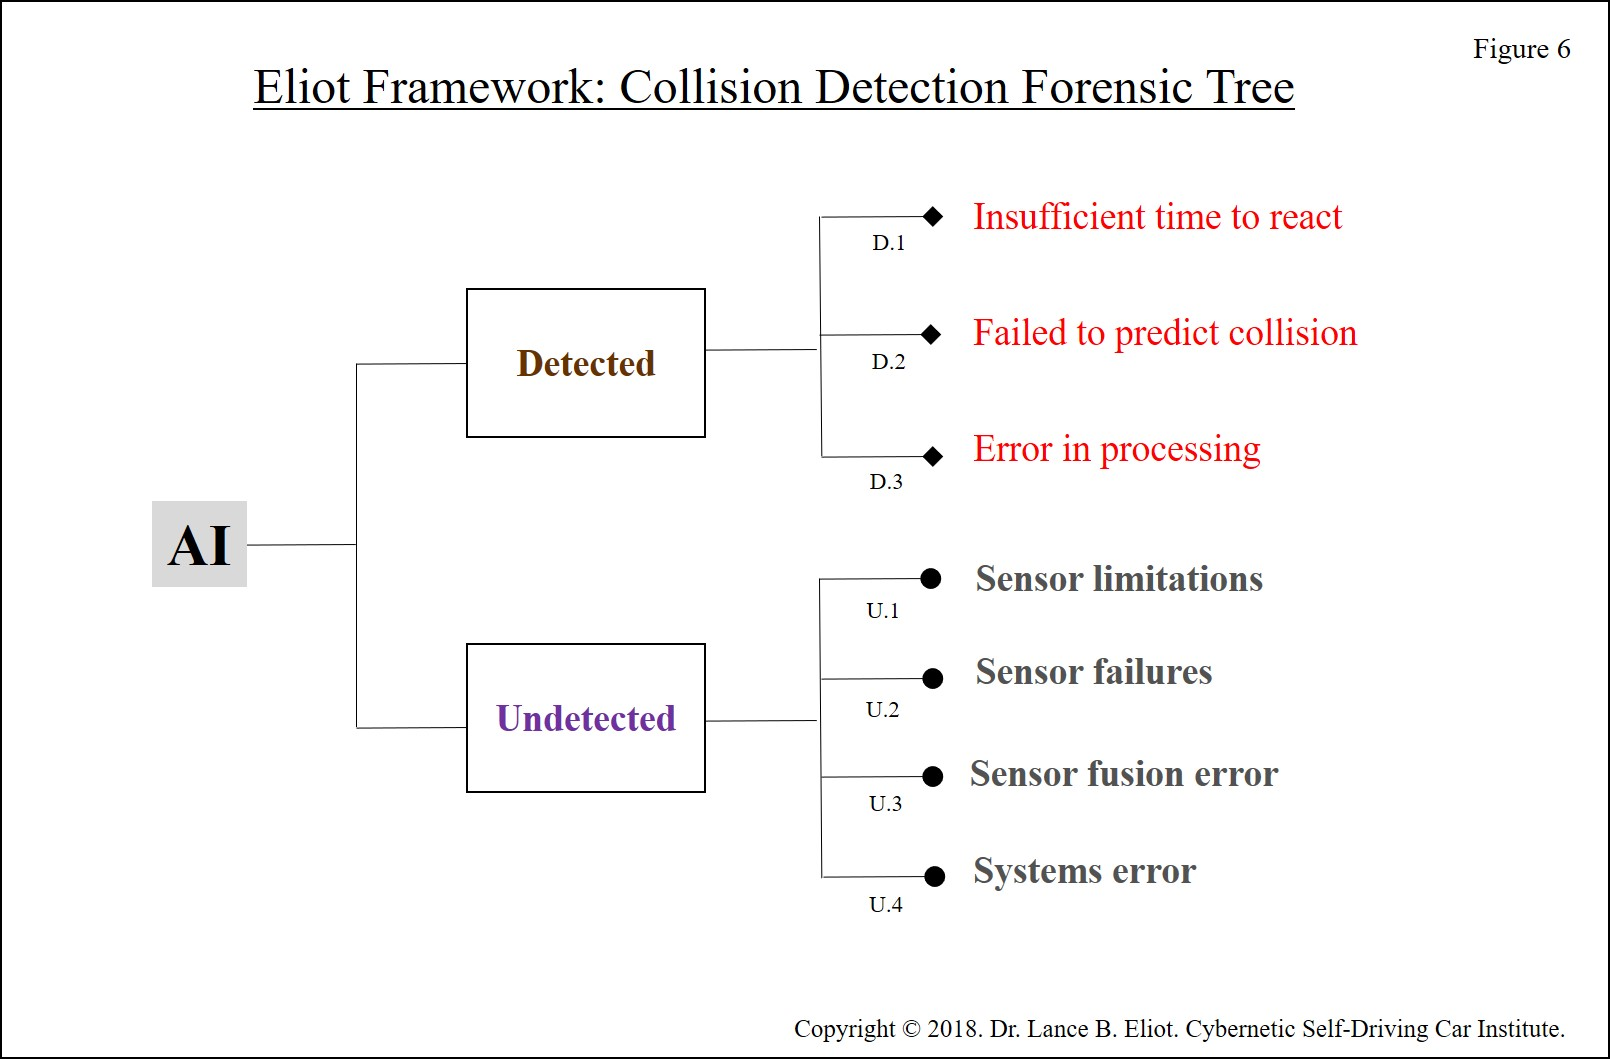 - Lance Eliot Uber Incident Figure 6 300 DPI - Initial Forensic Analysis of the Uber Self-Driving Car Incident in Arizona